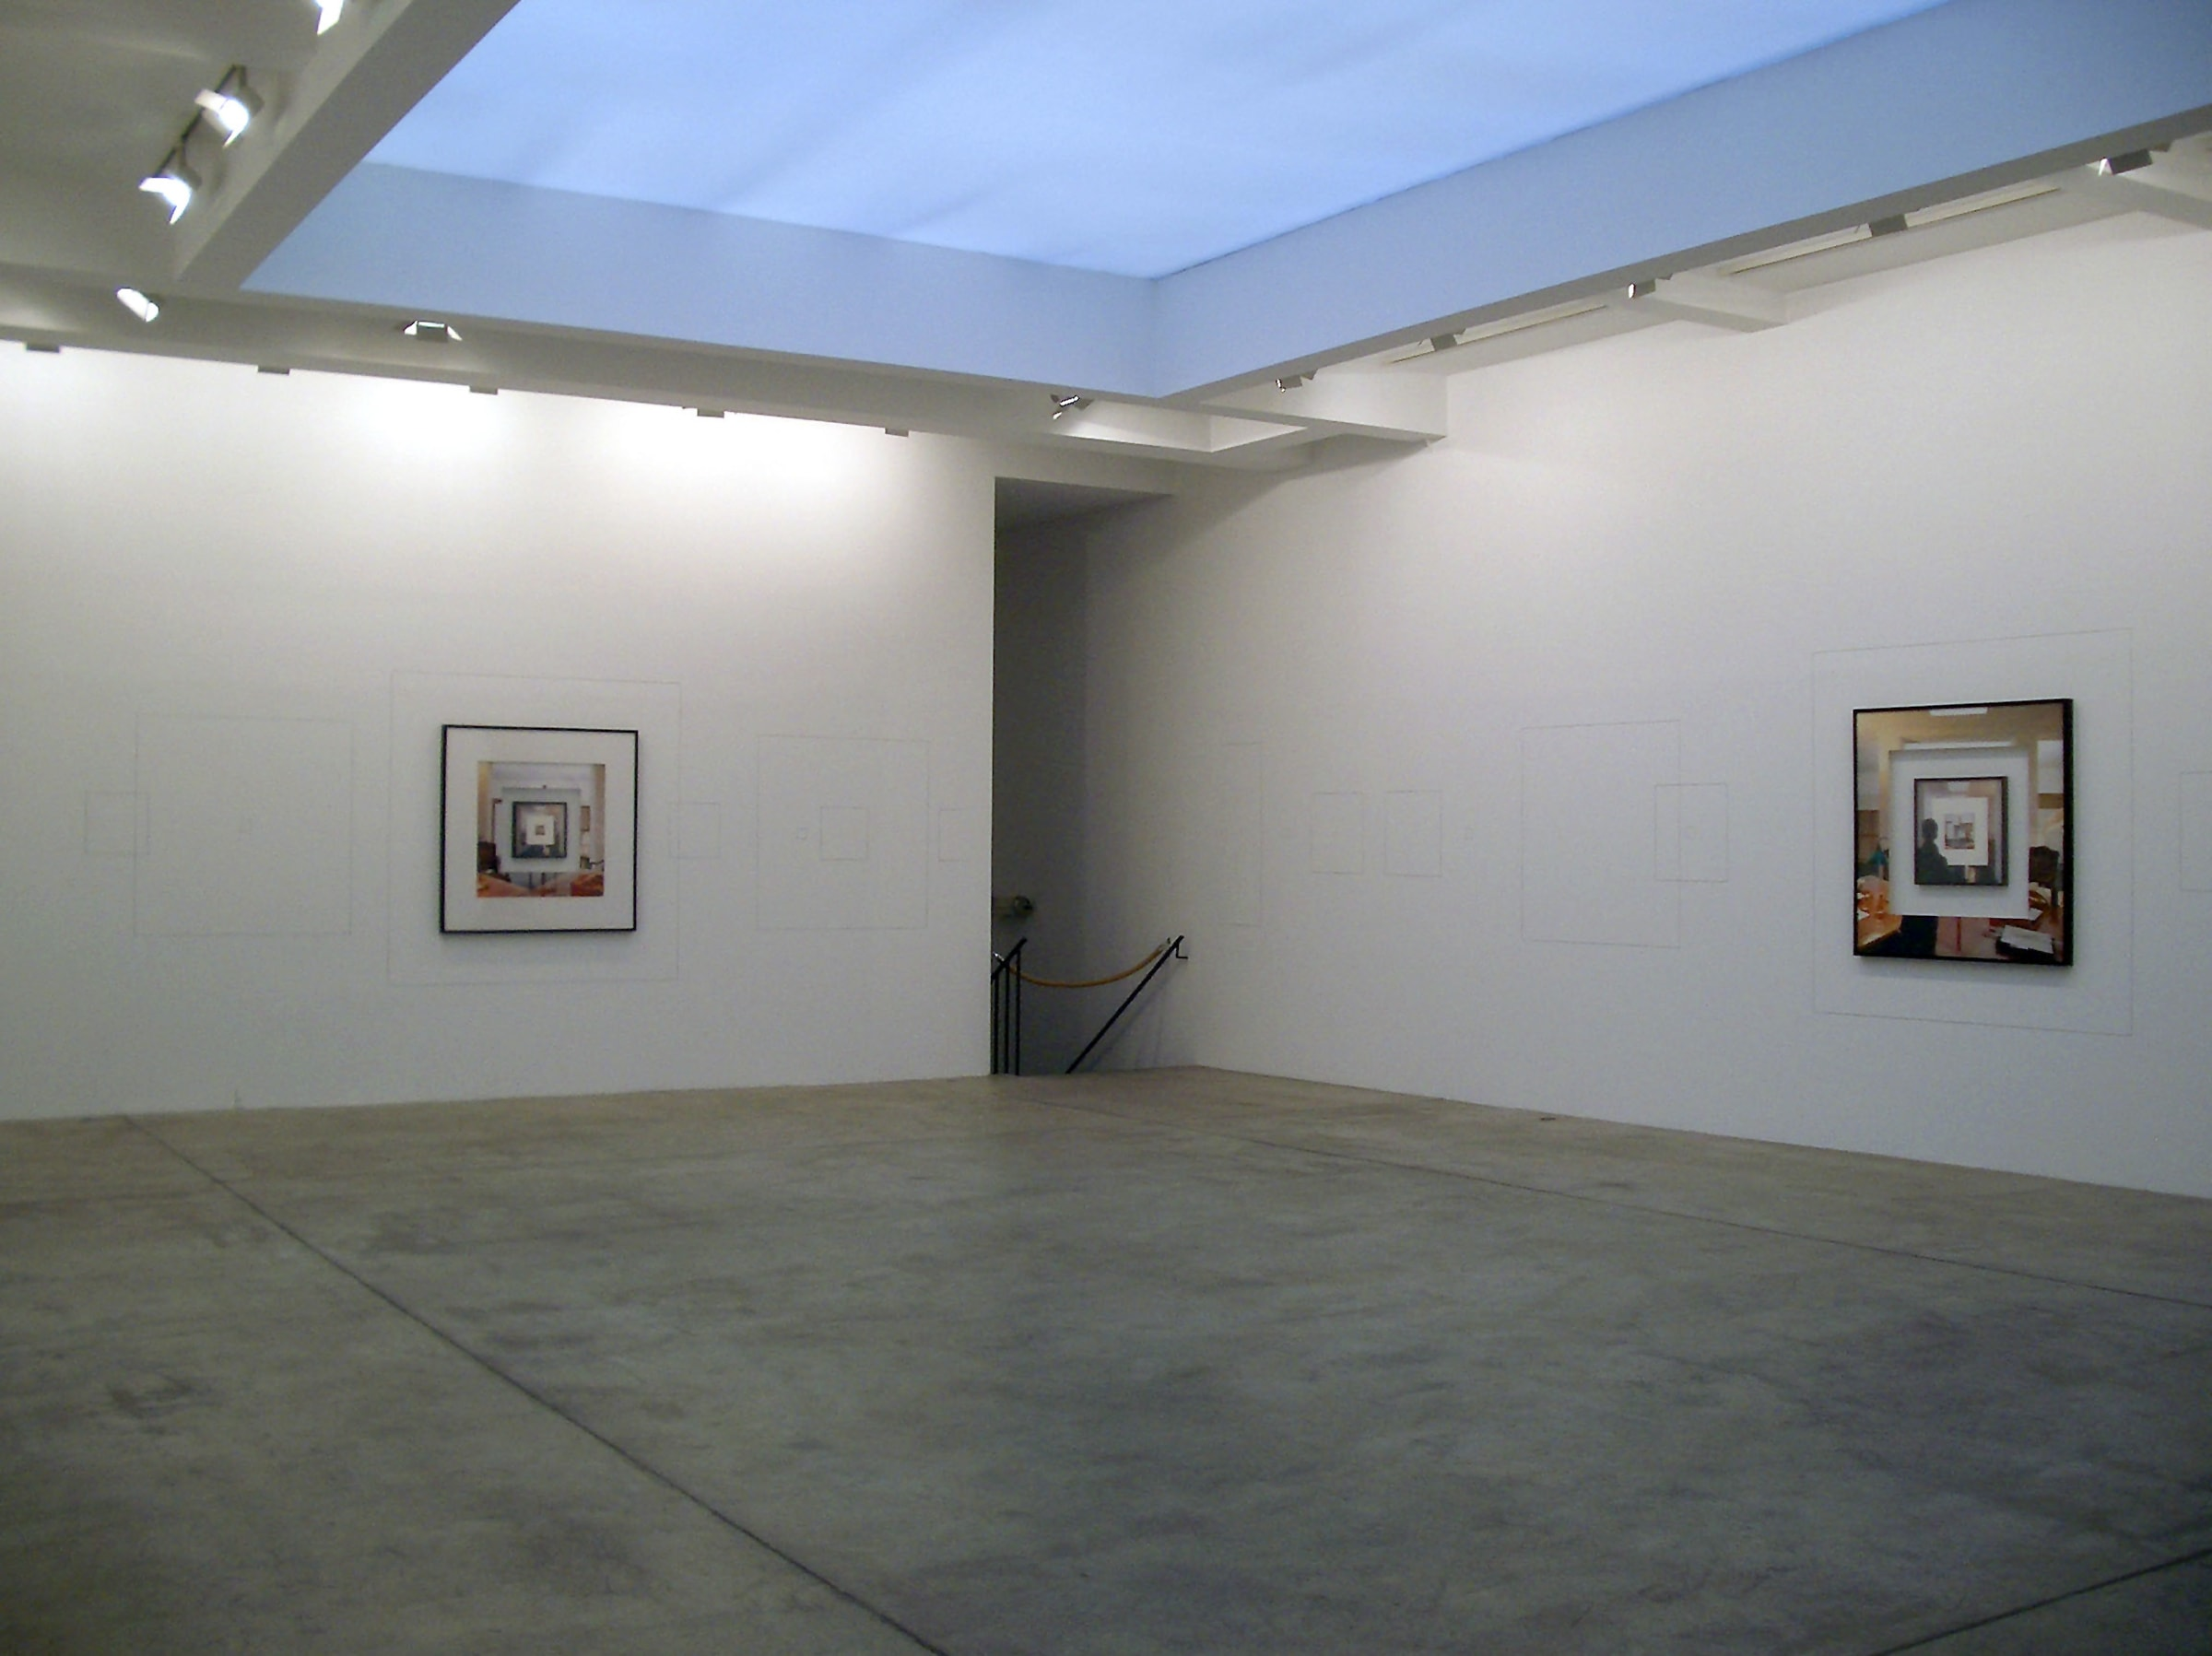 Two framed photographs on two separate walls of a gallery.